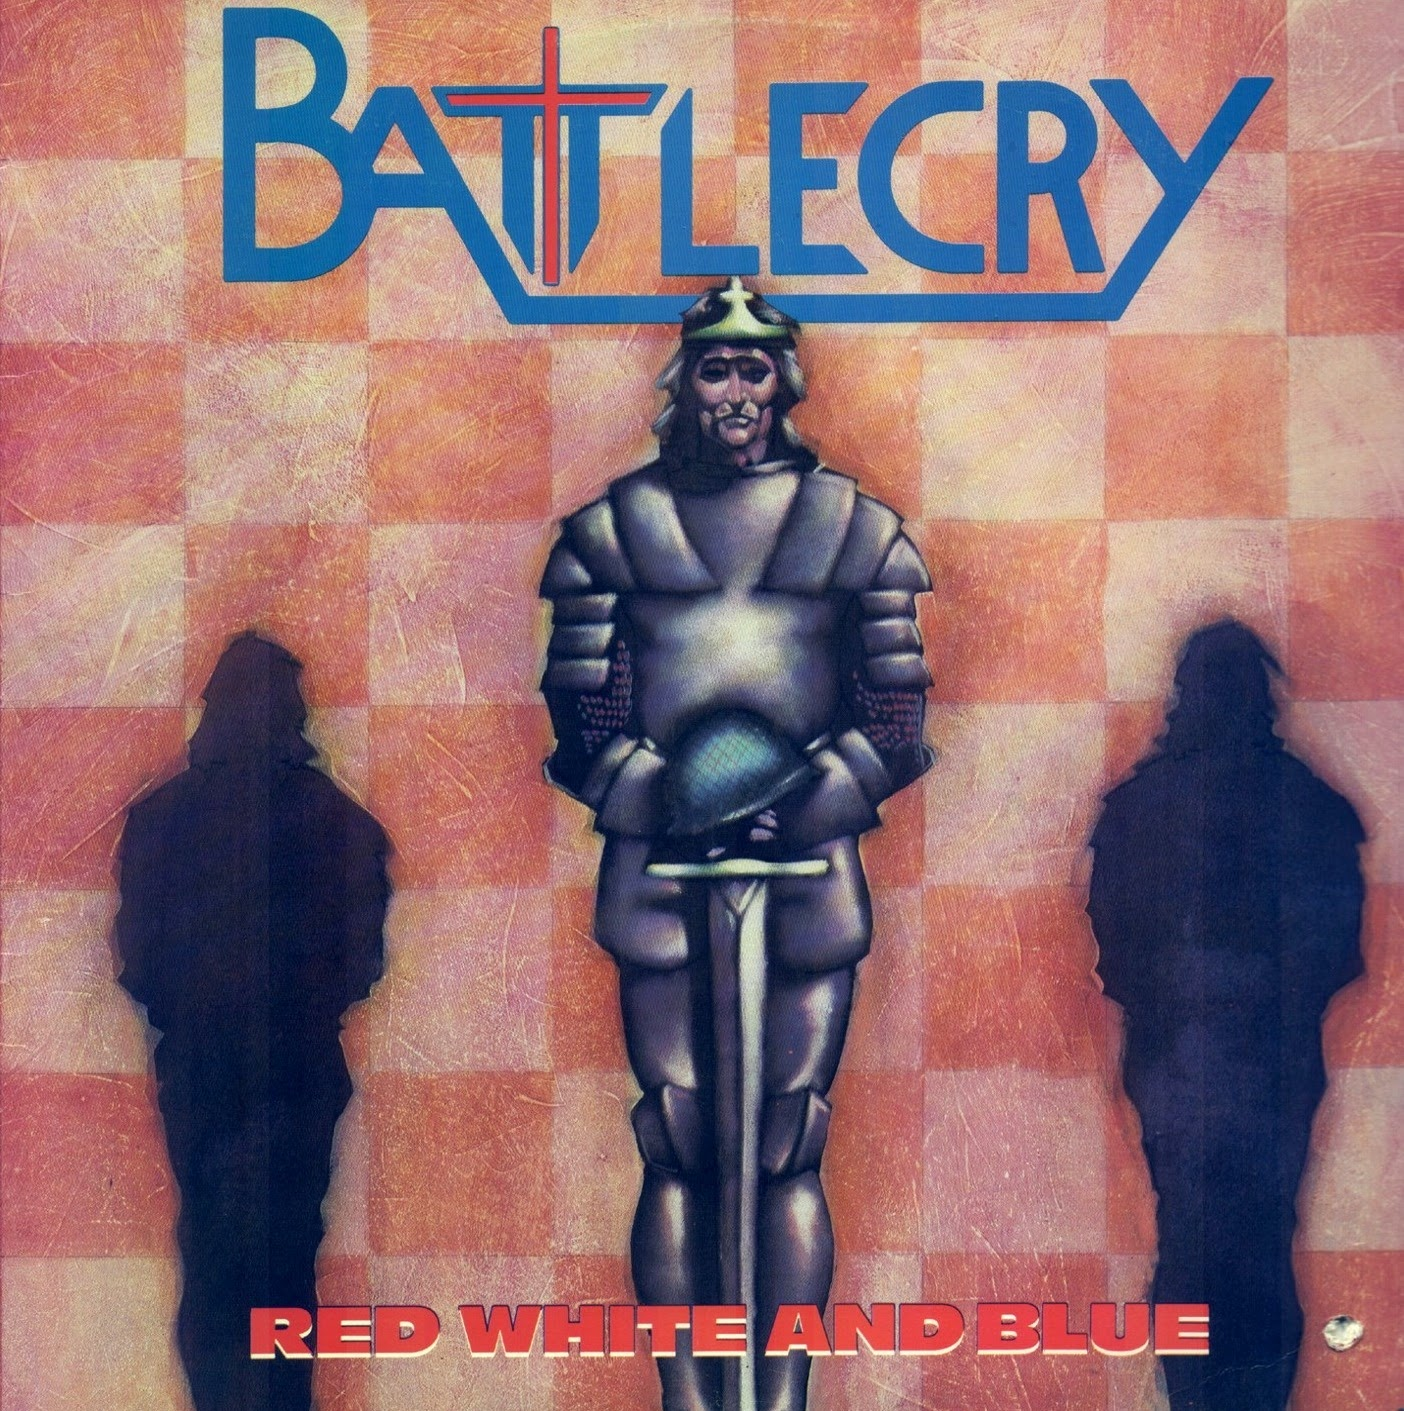 Battlecry Red white and blue 1985 aor melodic rock